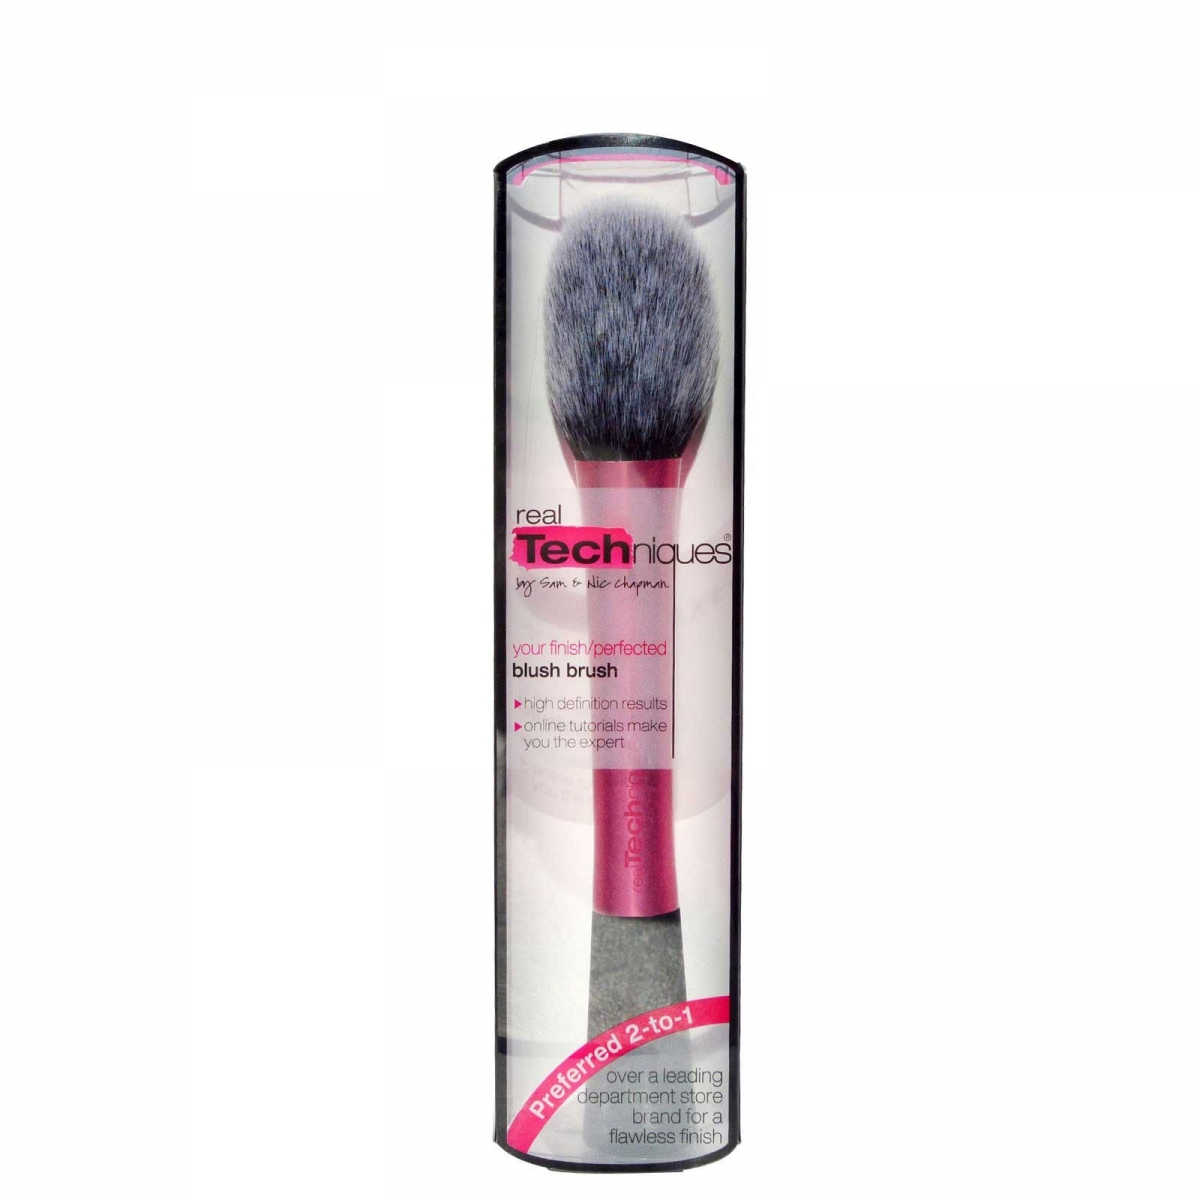 Кисть для румян Real Techniques Your Finish/Perfected Blush Brush